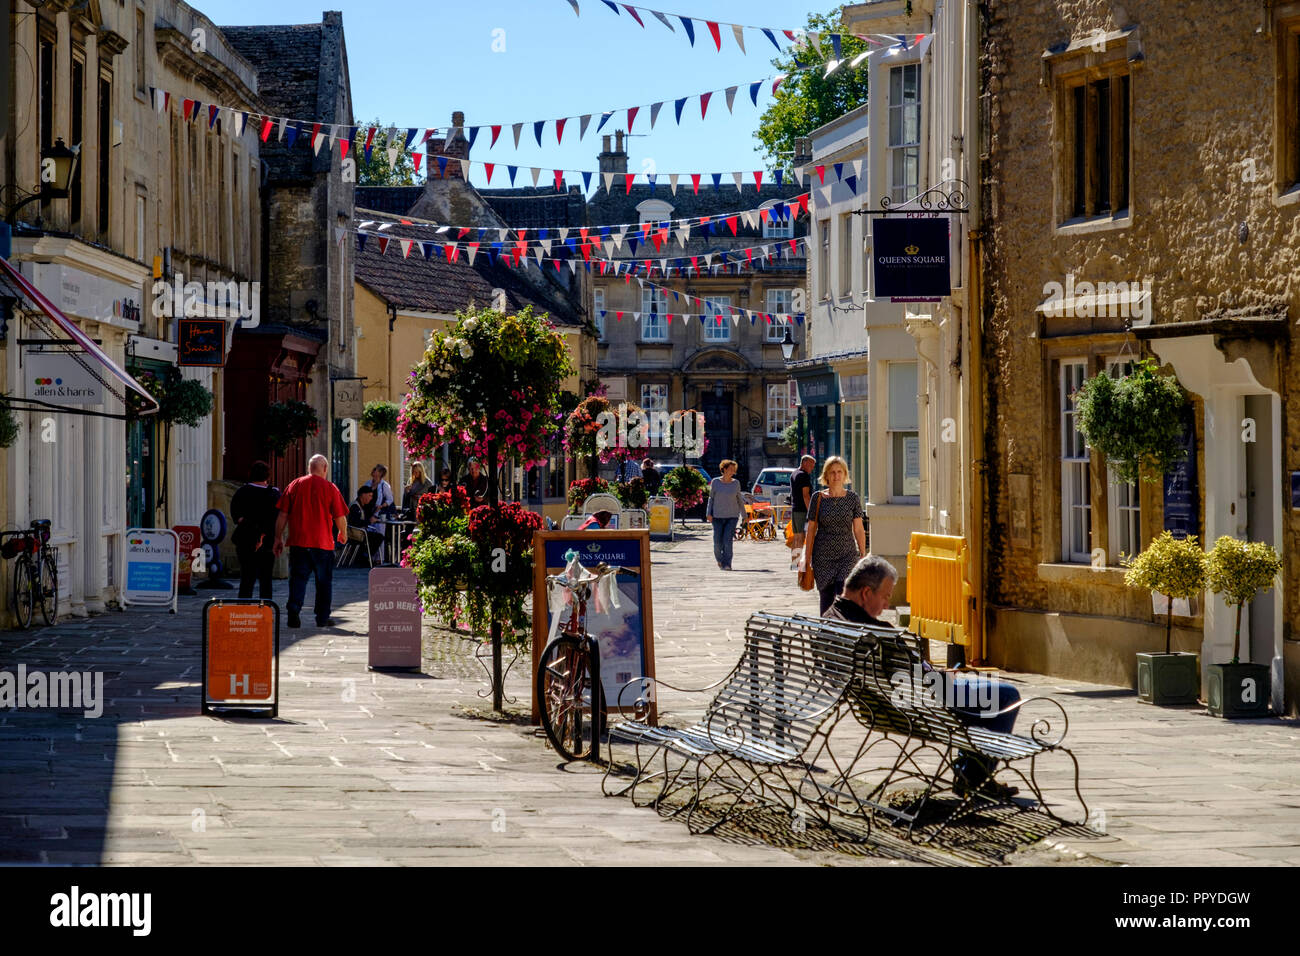 Corsham a small town in wiltshire near chippenham, England UK On a bright September day. Stock Photo